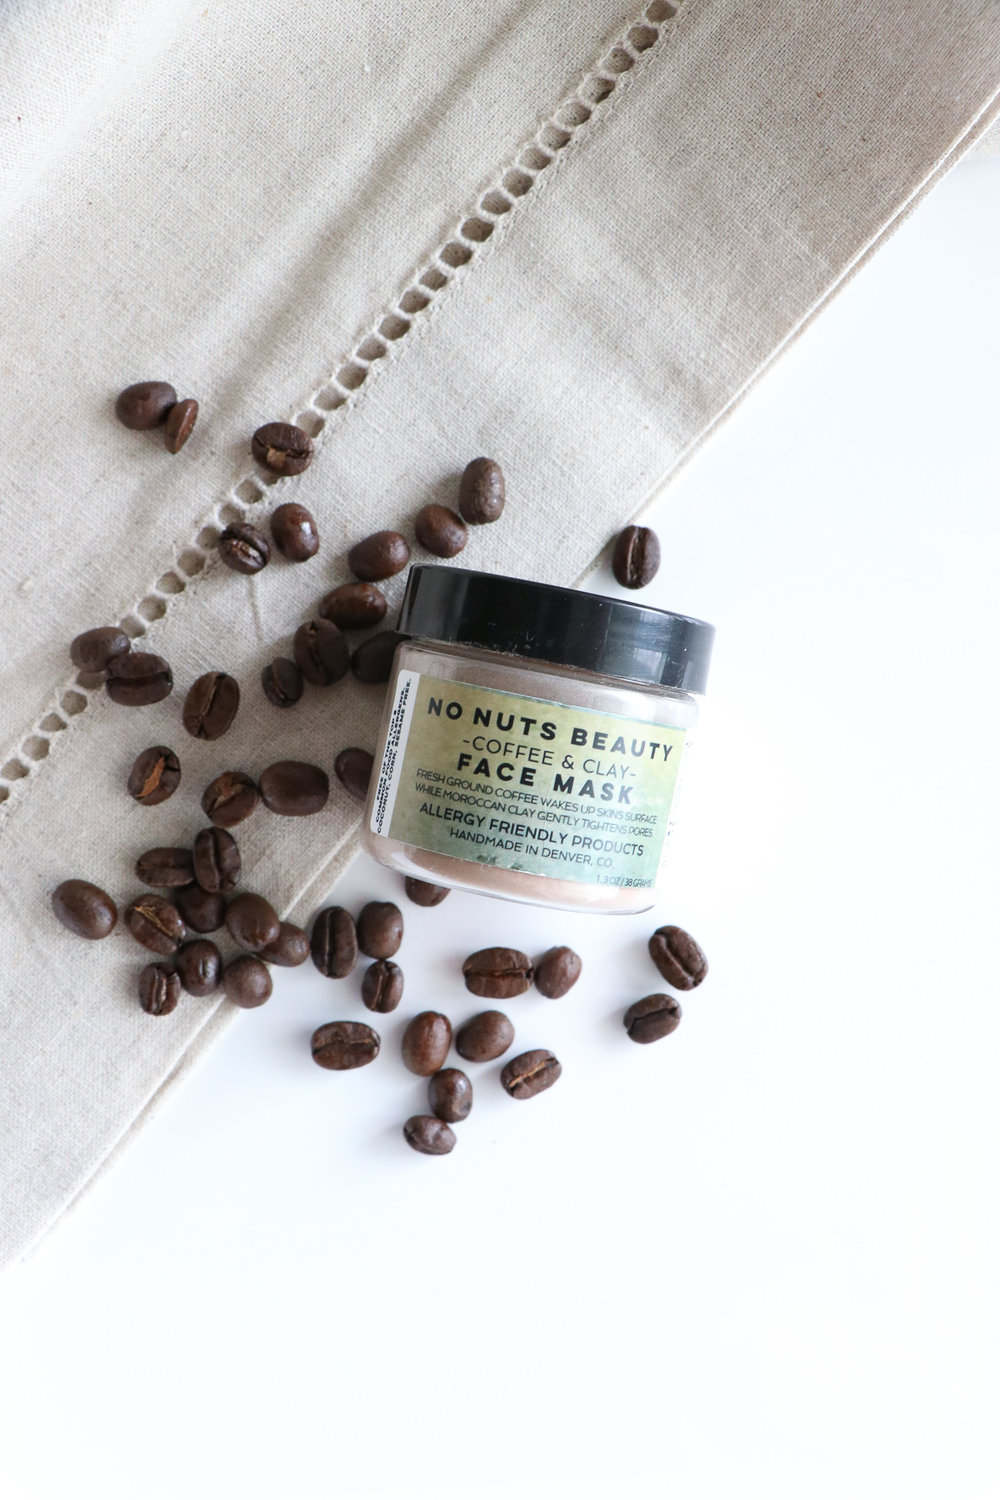 no nuts beauty coffee mask